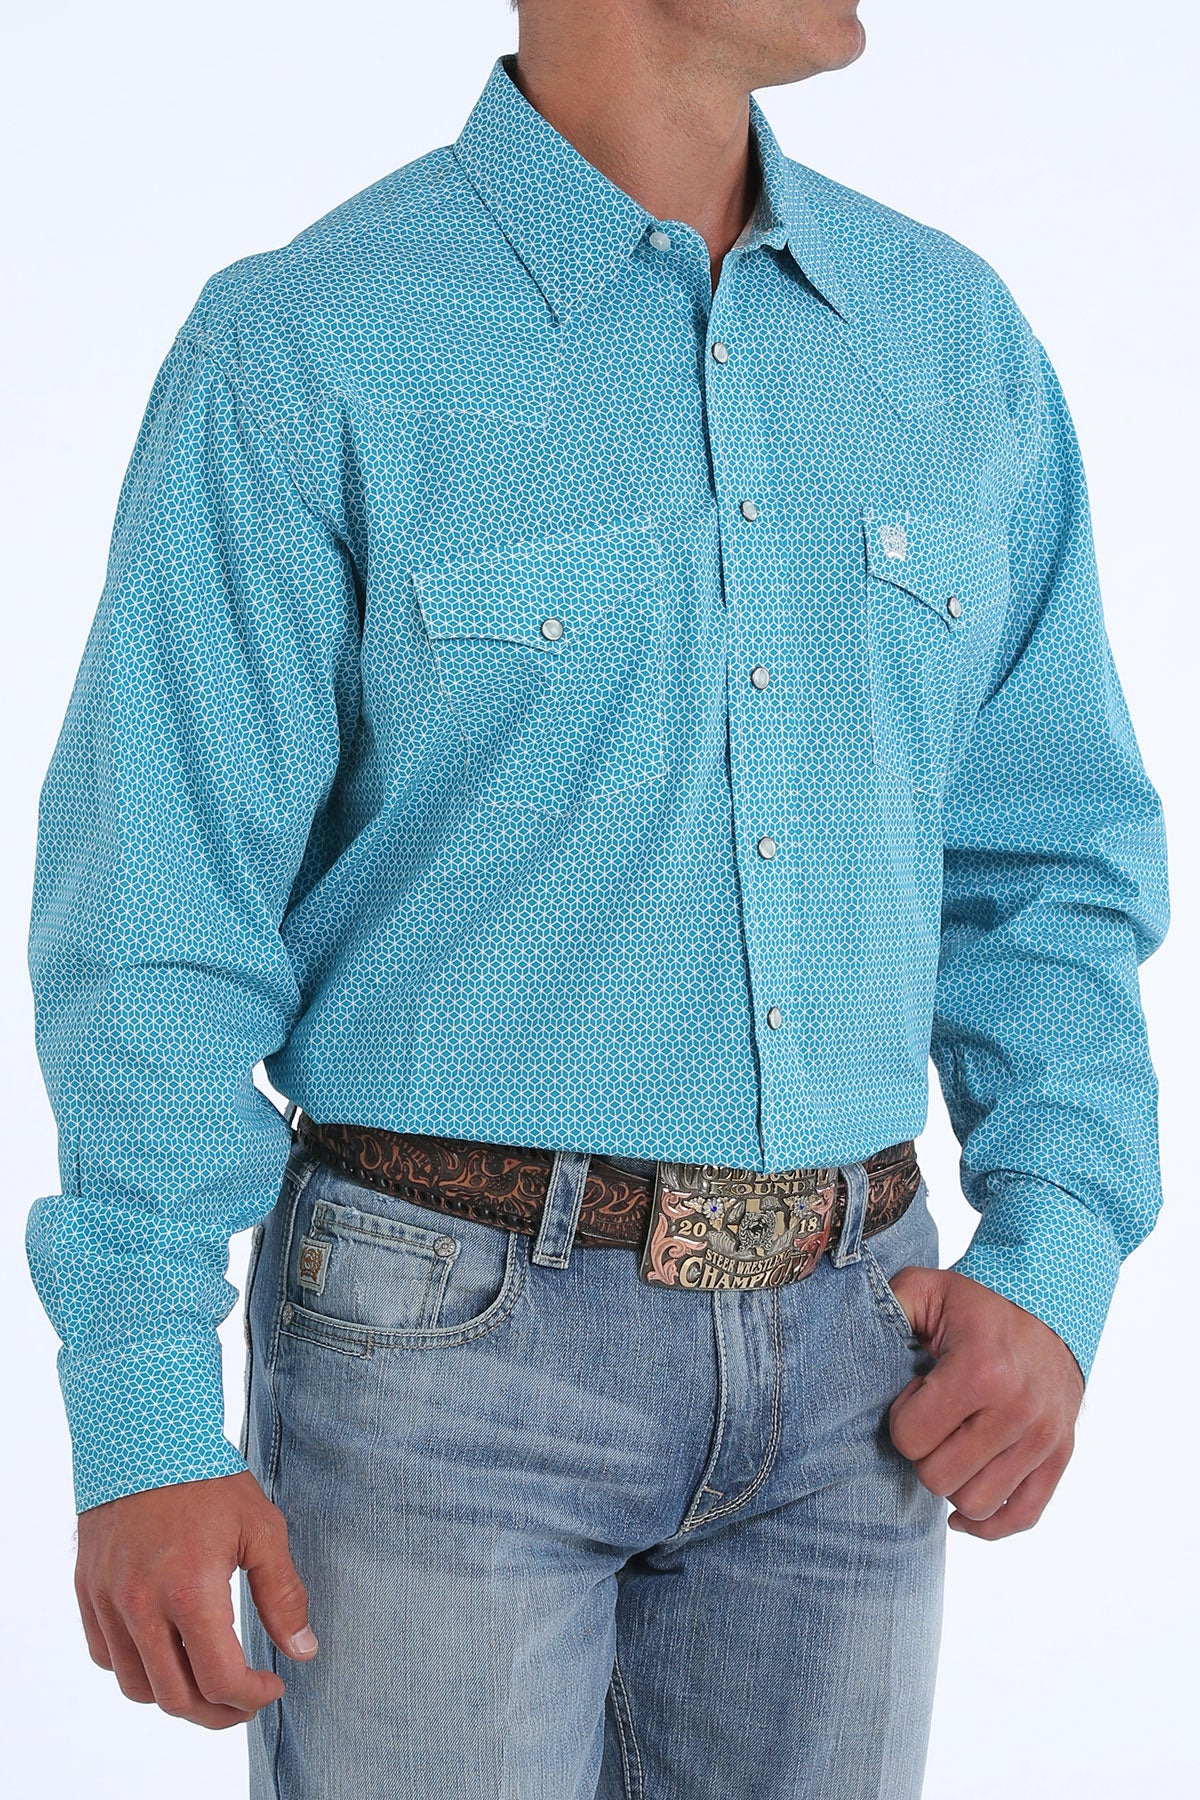 'Cinch' MTW1682011 - LS Button Down Plaid Shirt - Teal